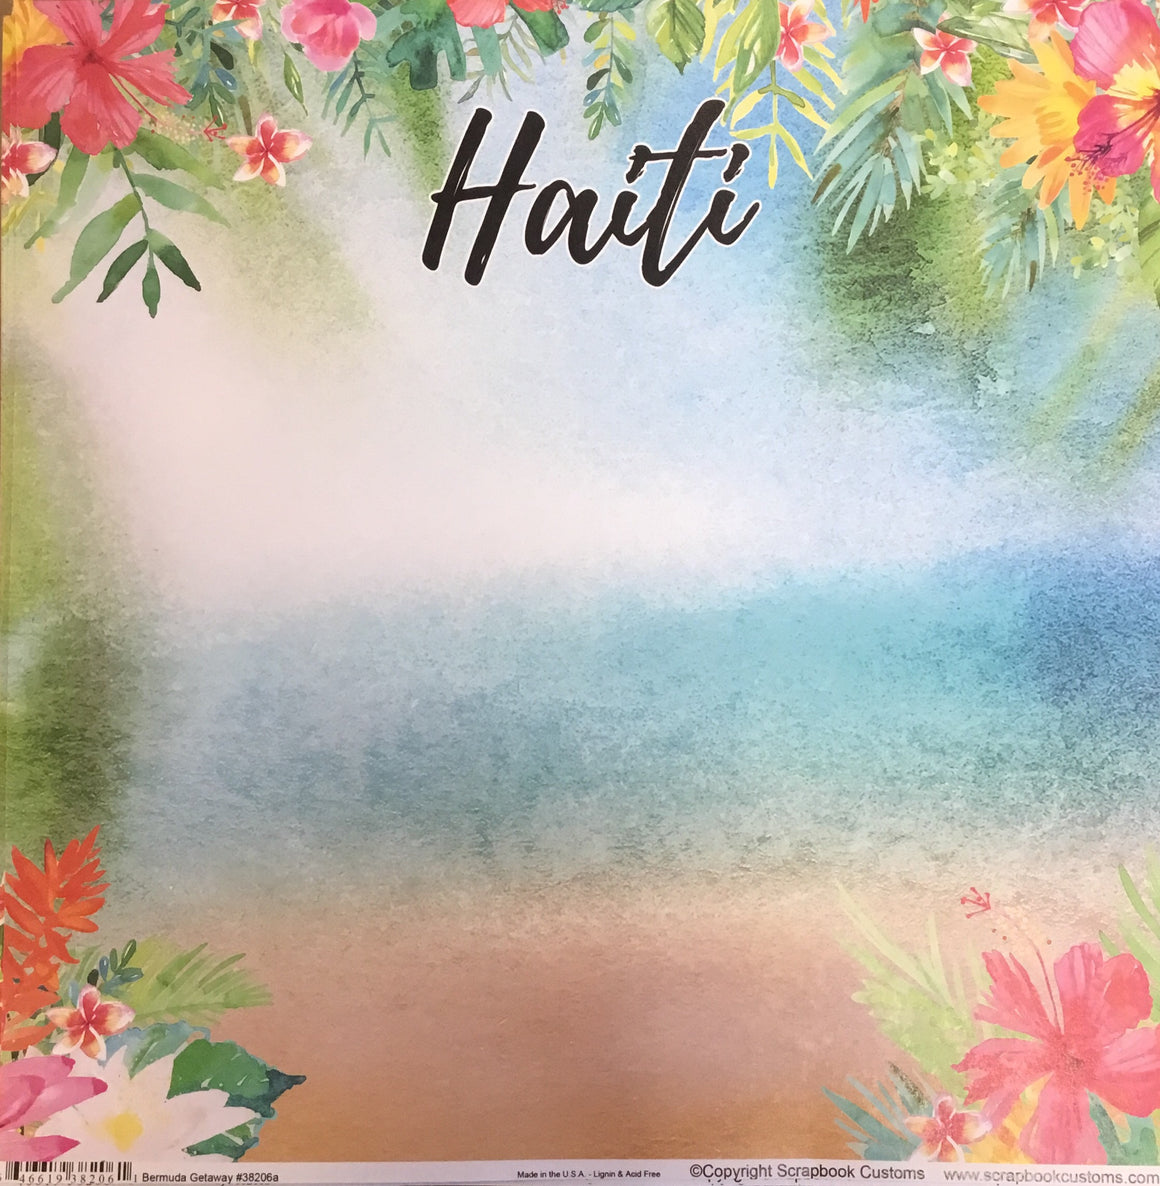 Haiti 12x12 single sheet